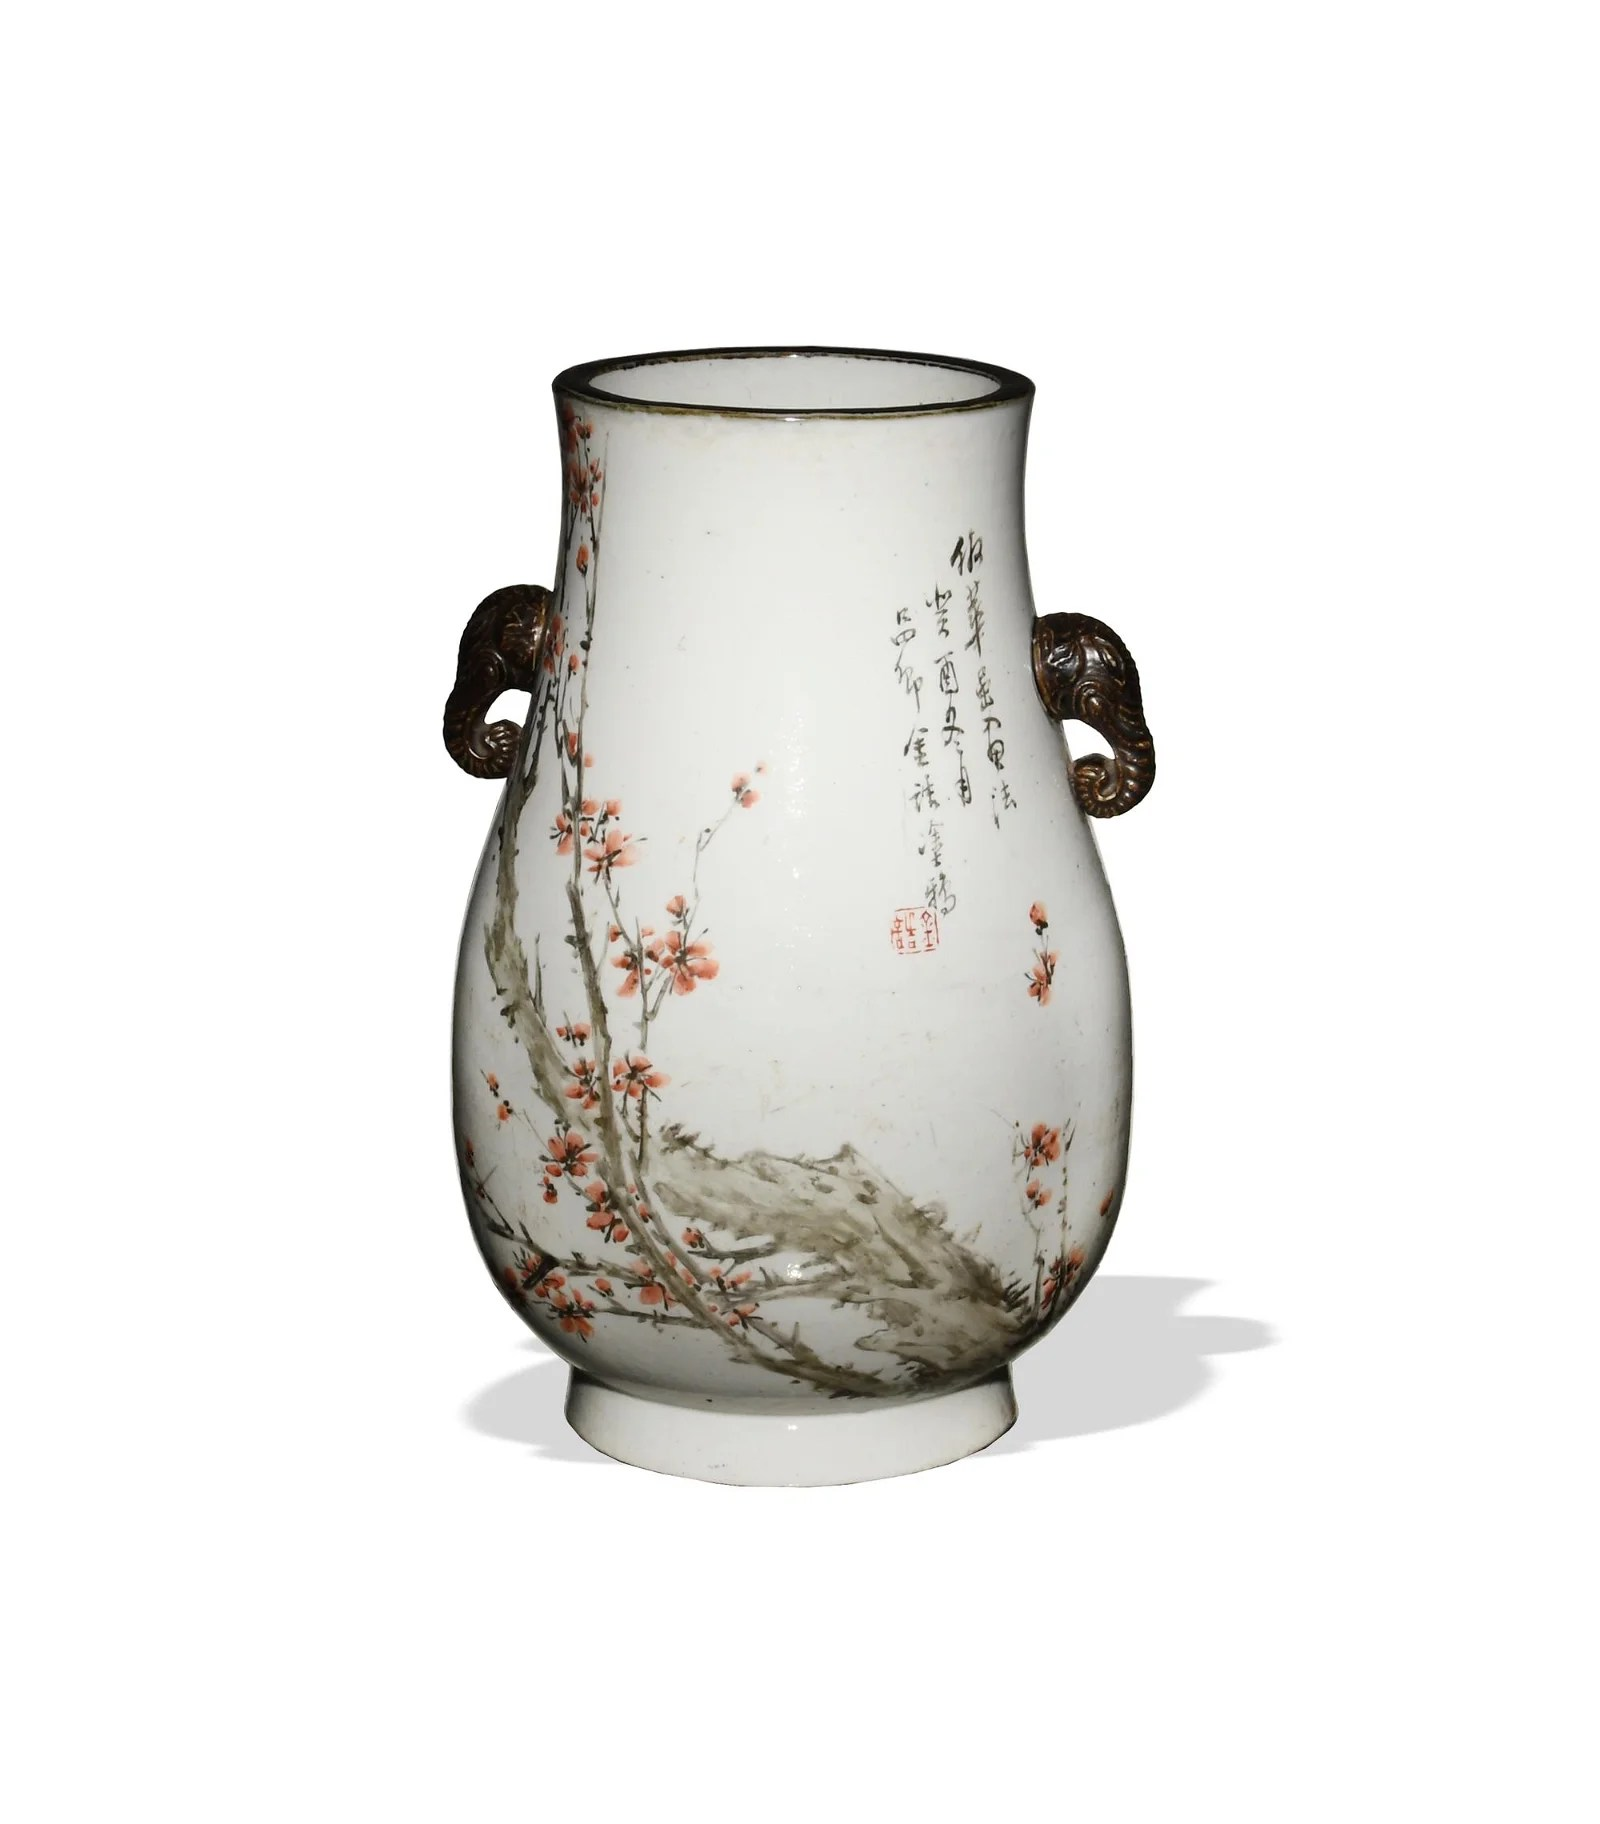 Chinese Vase by Jin Pinqing and Wang Shaowei